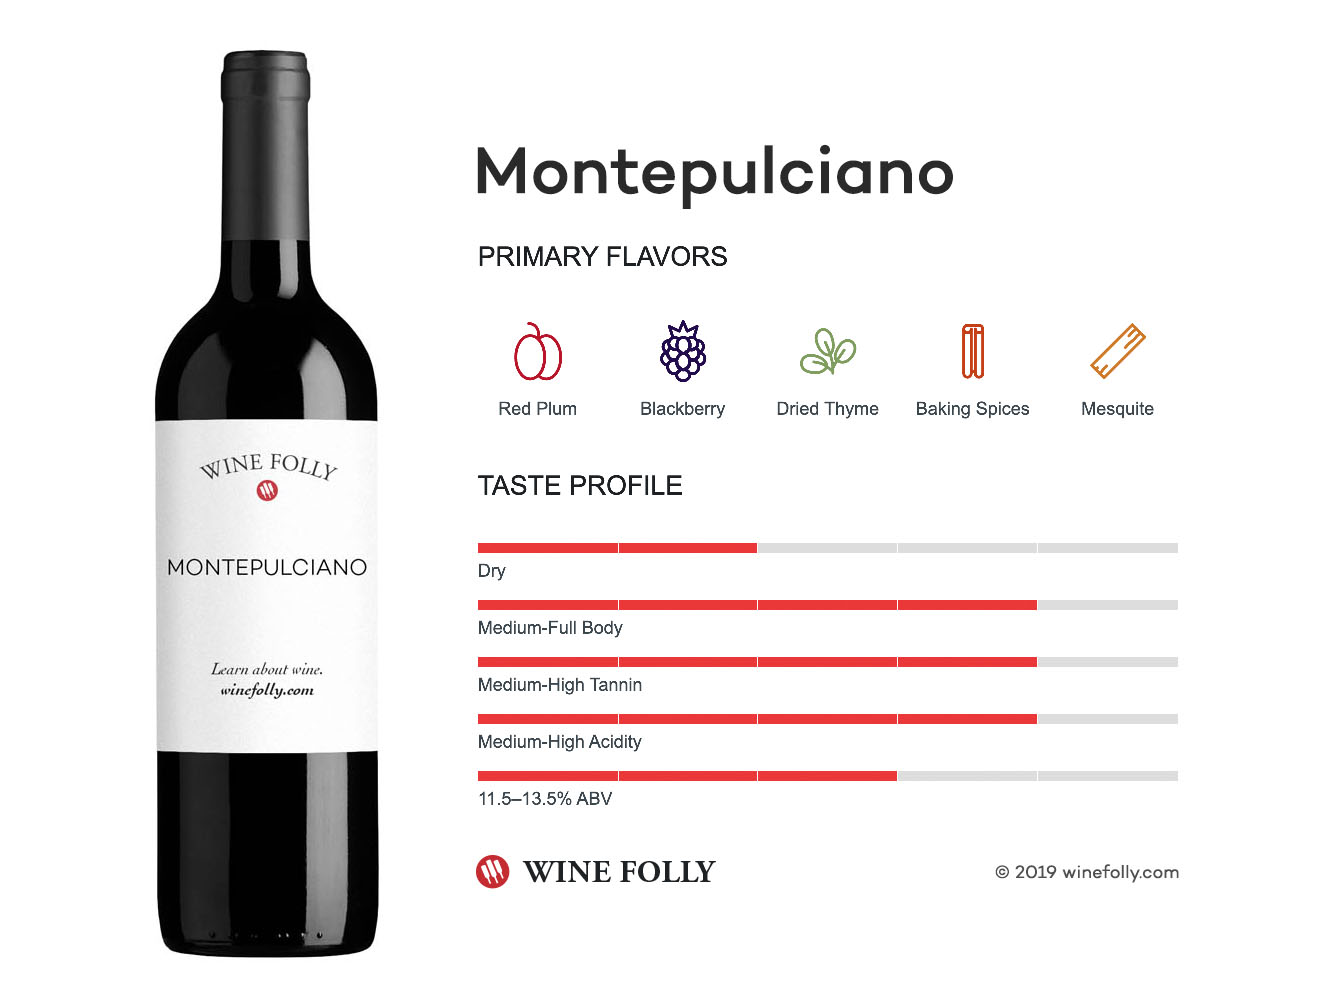 Montepulciano wine taste profile - infographic by Wine Folly